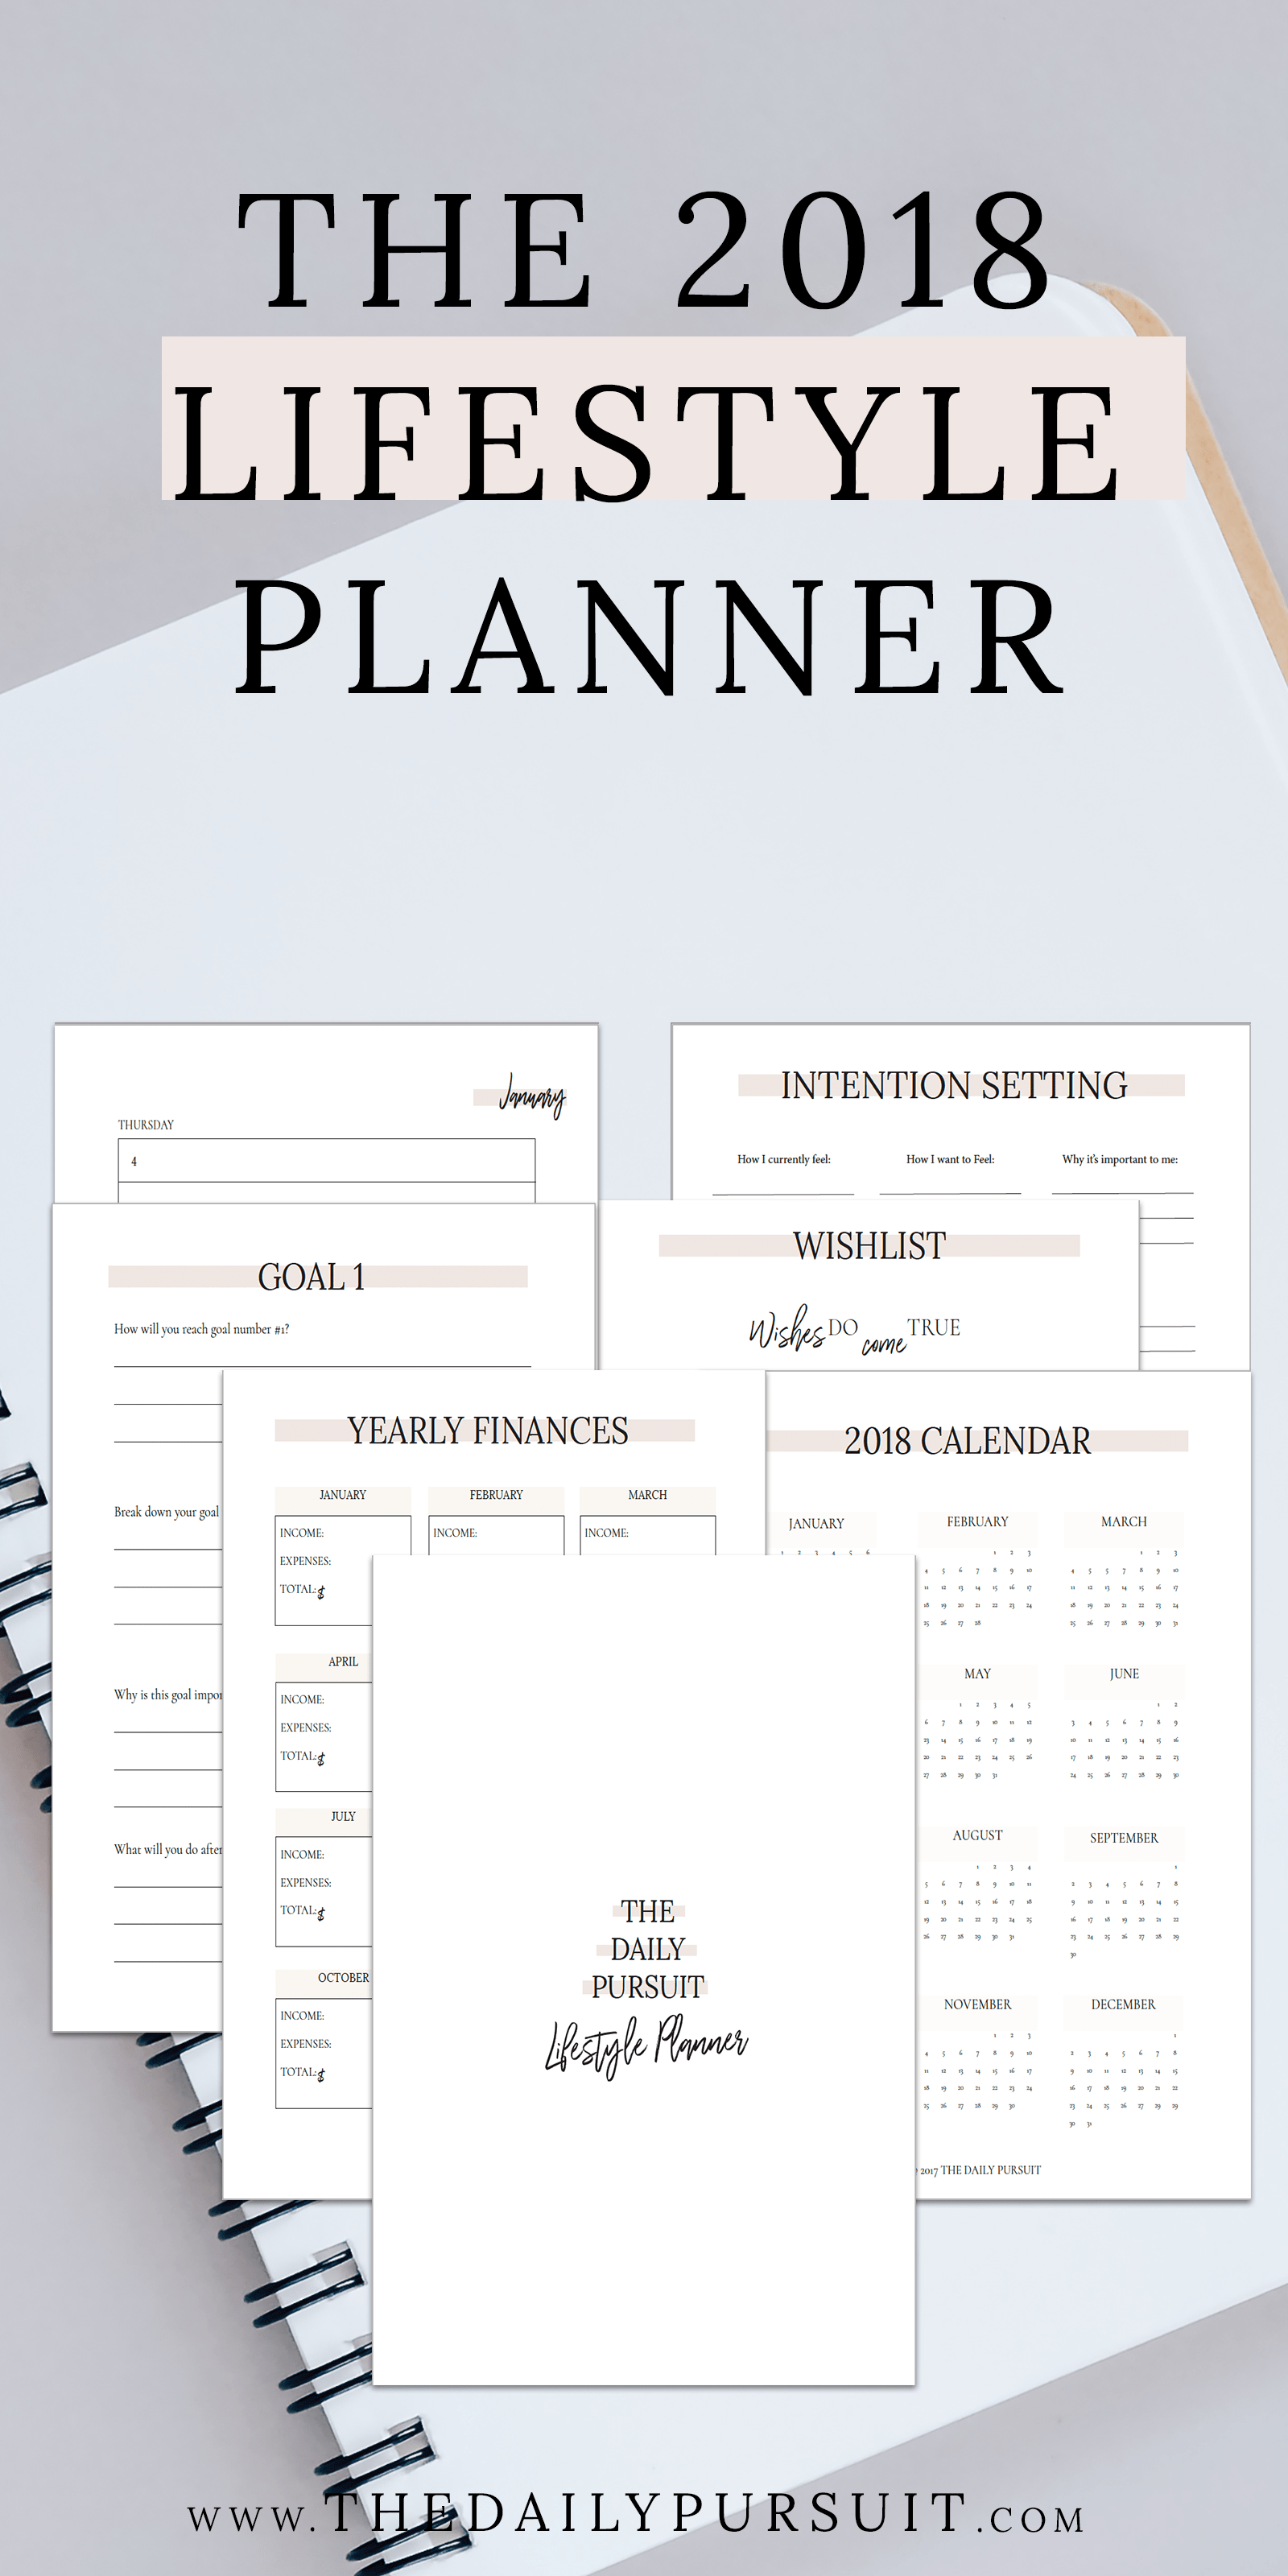 Lifestyle Planner By